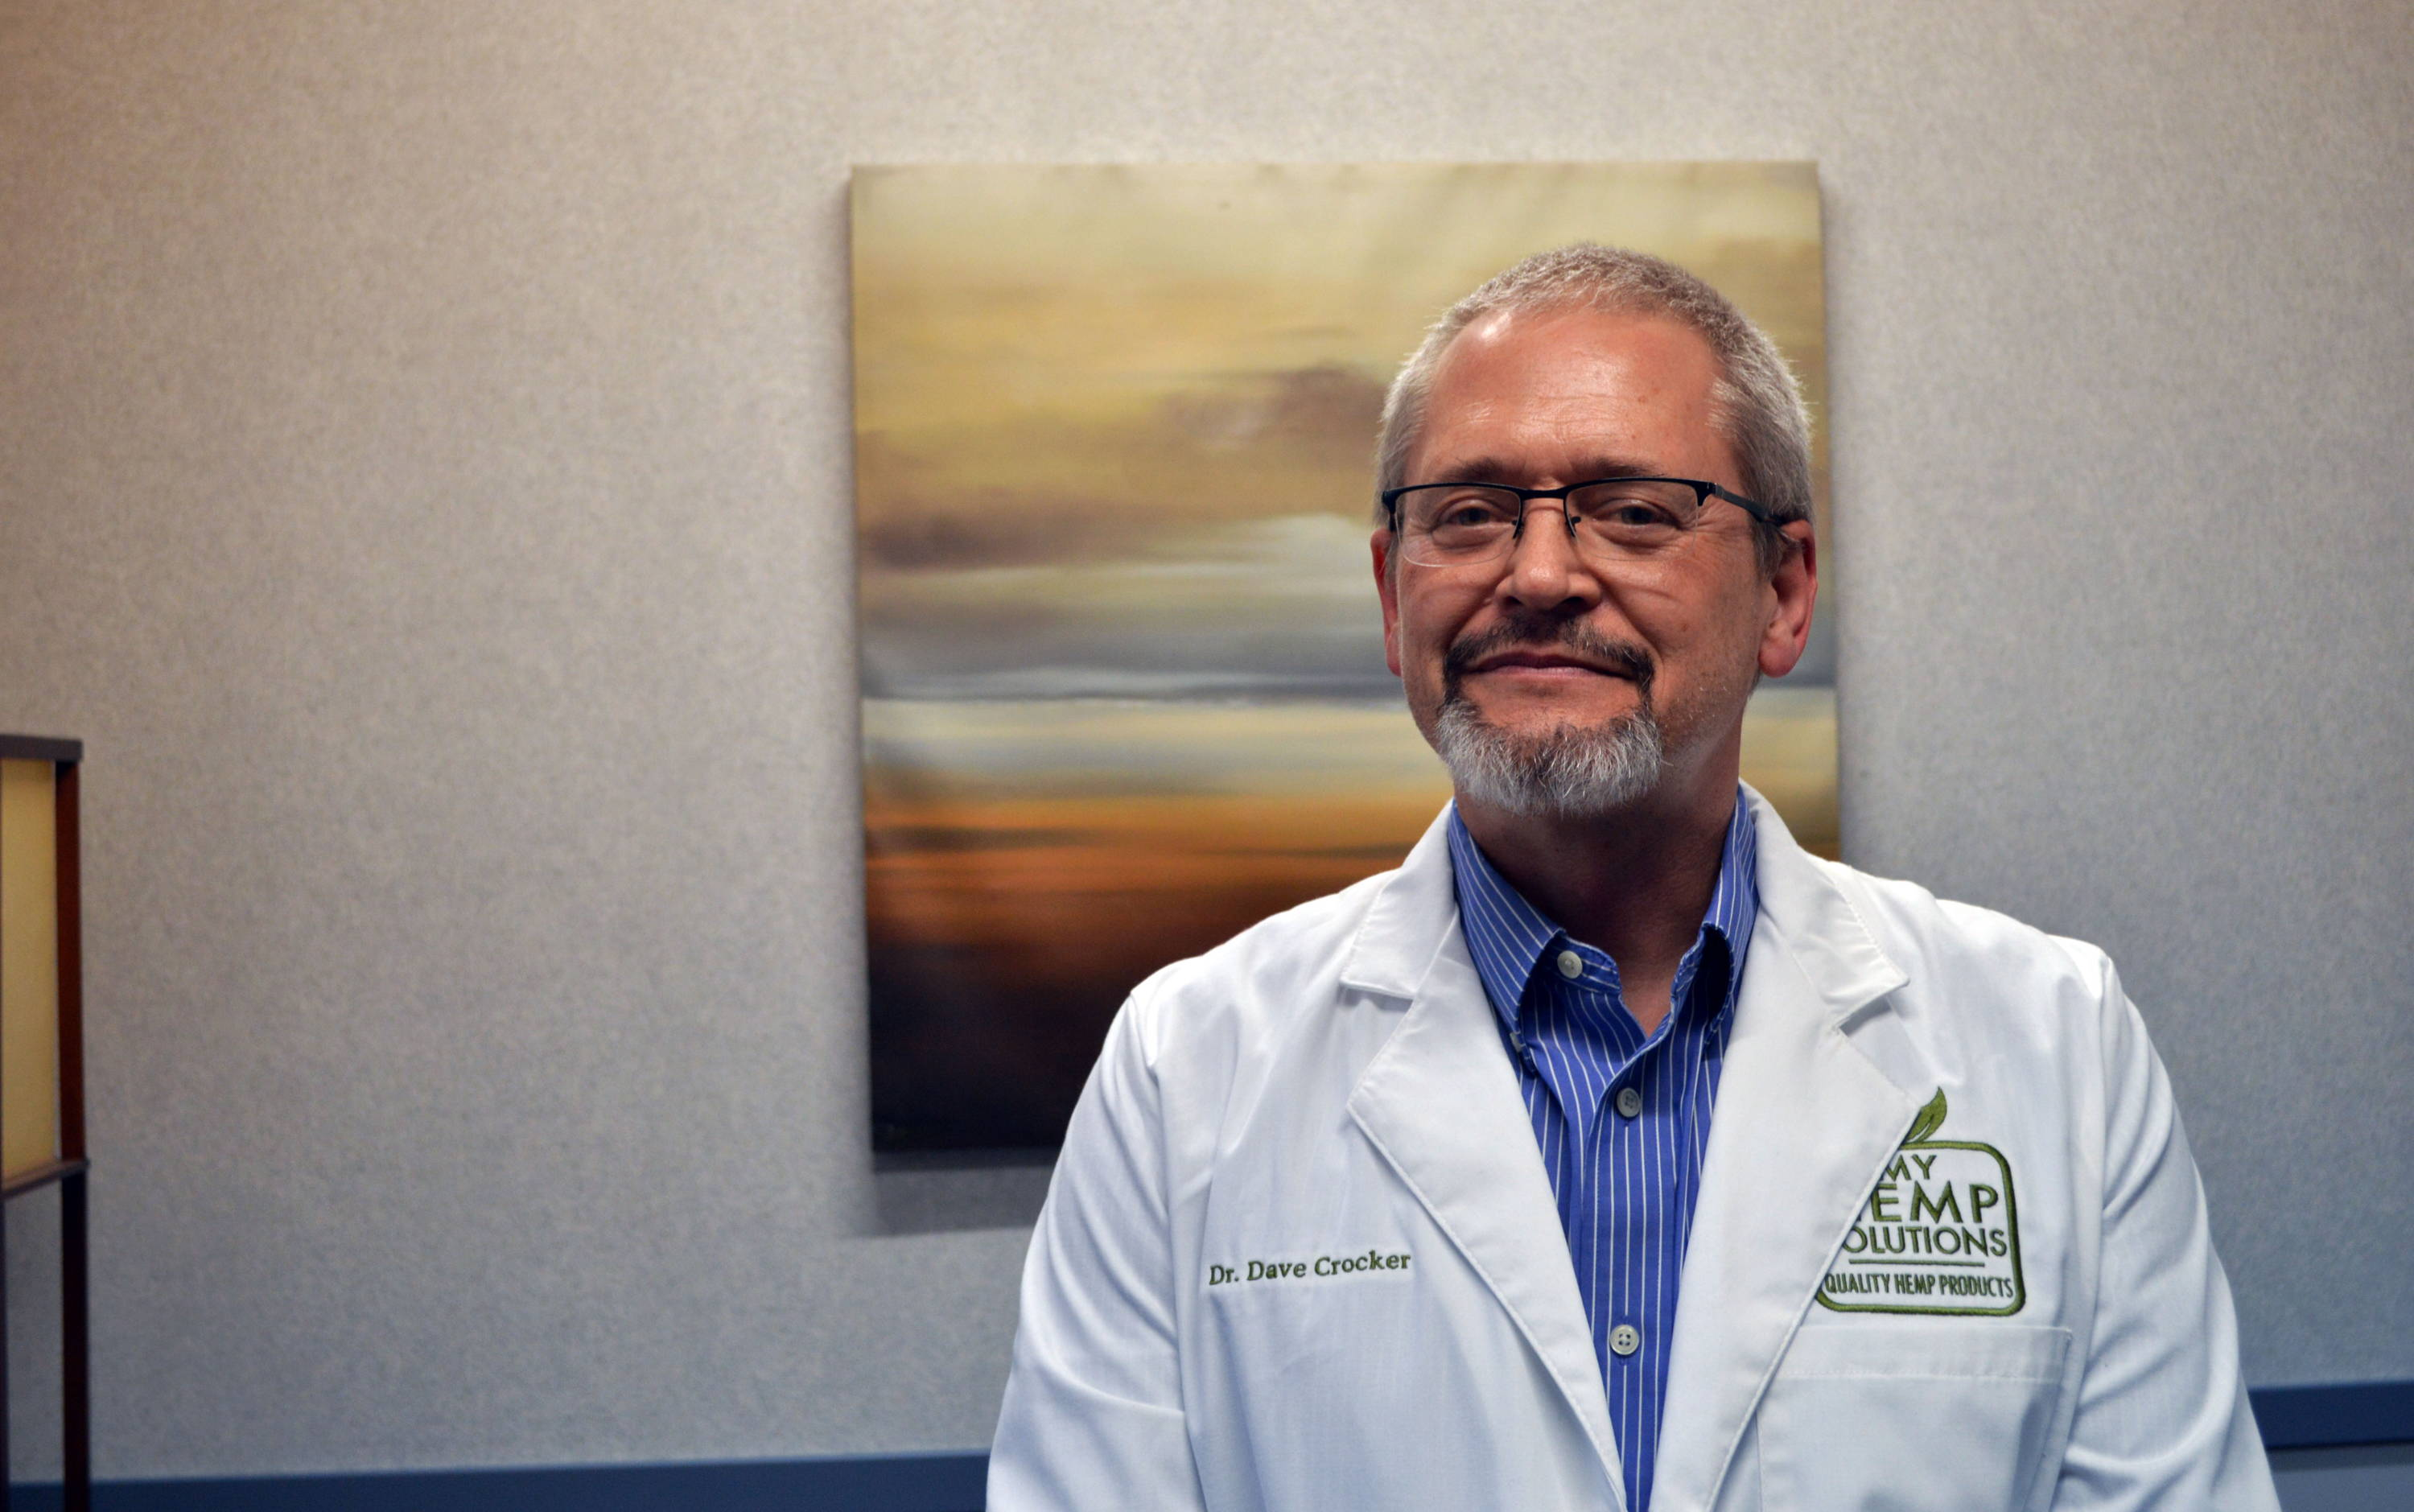 A picture of Doctor Dave, the creator of Solutions by Doctor Dave CBD line, standing in his white lab coat. He looks happy and knowledgeable.